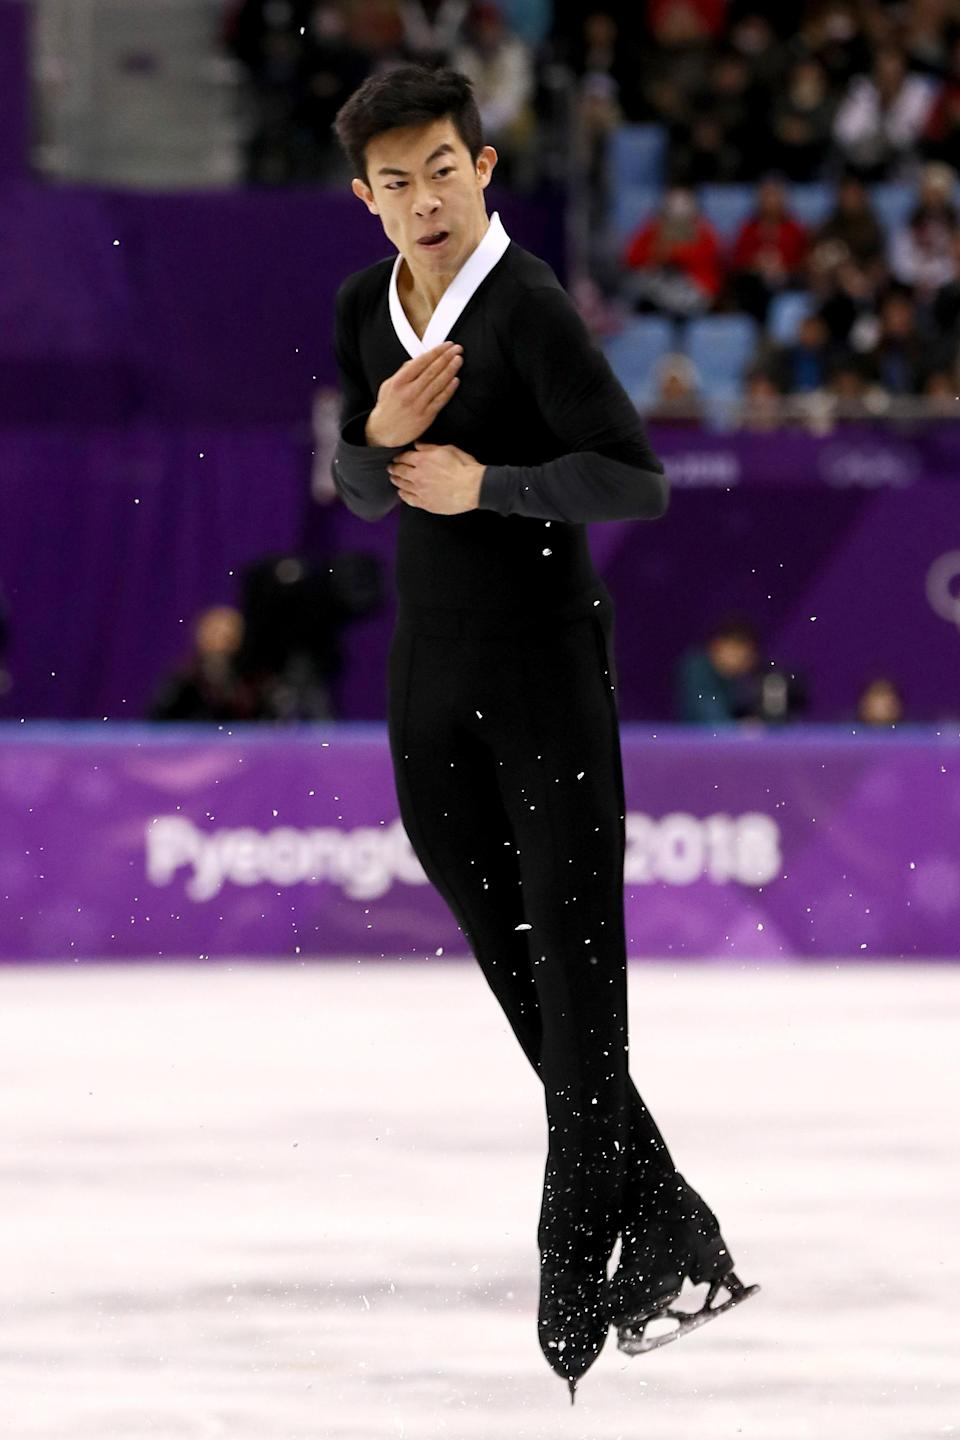 <p>American Nathan Chen attempted a record six quadruple jumps in his free skate routine in PyeongChang, South Korea, landing five of them clean. </p>